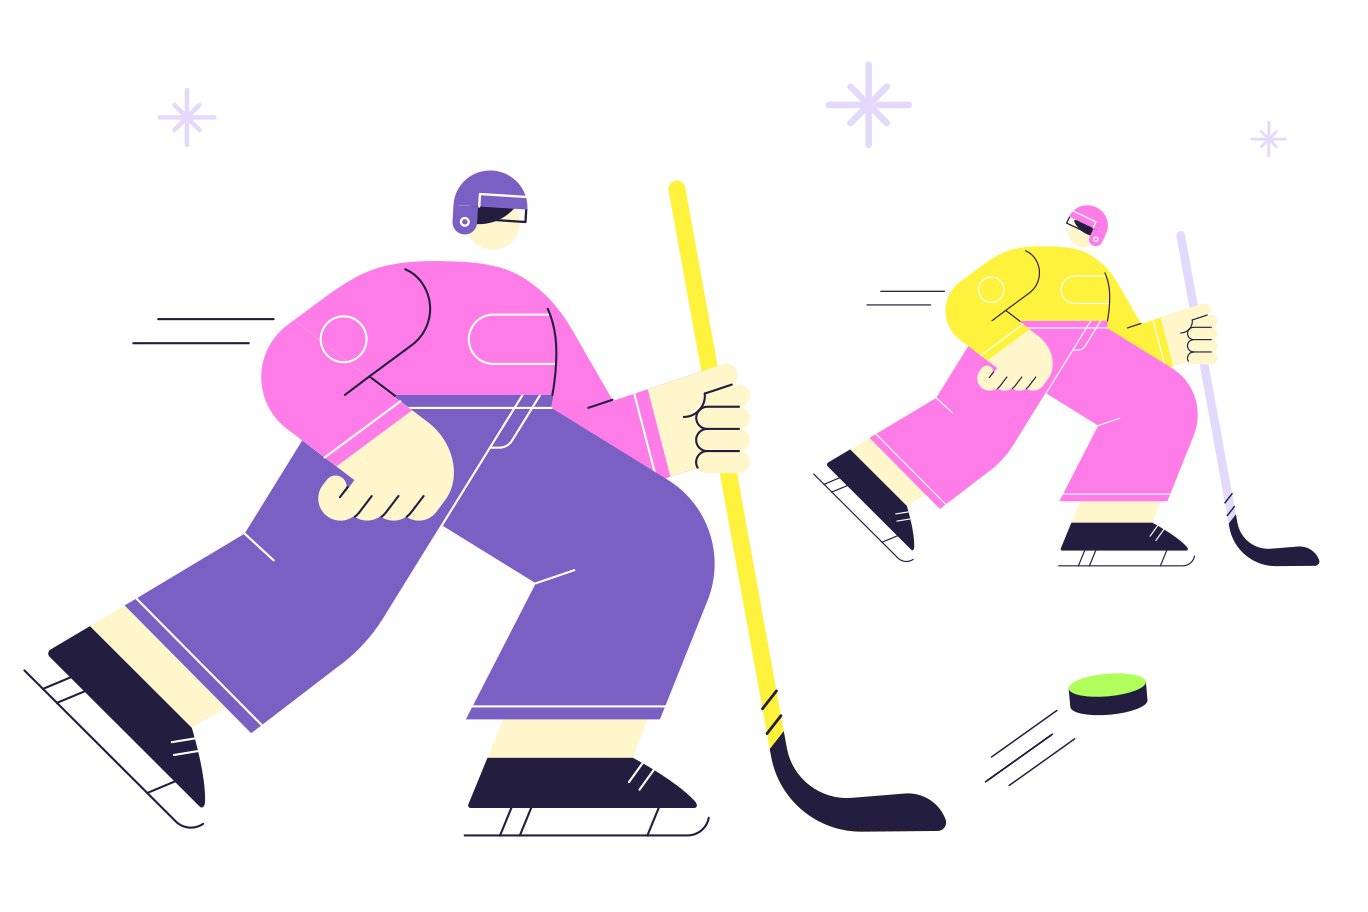 Friendly match Clipart illustration in PNG, SVG